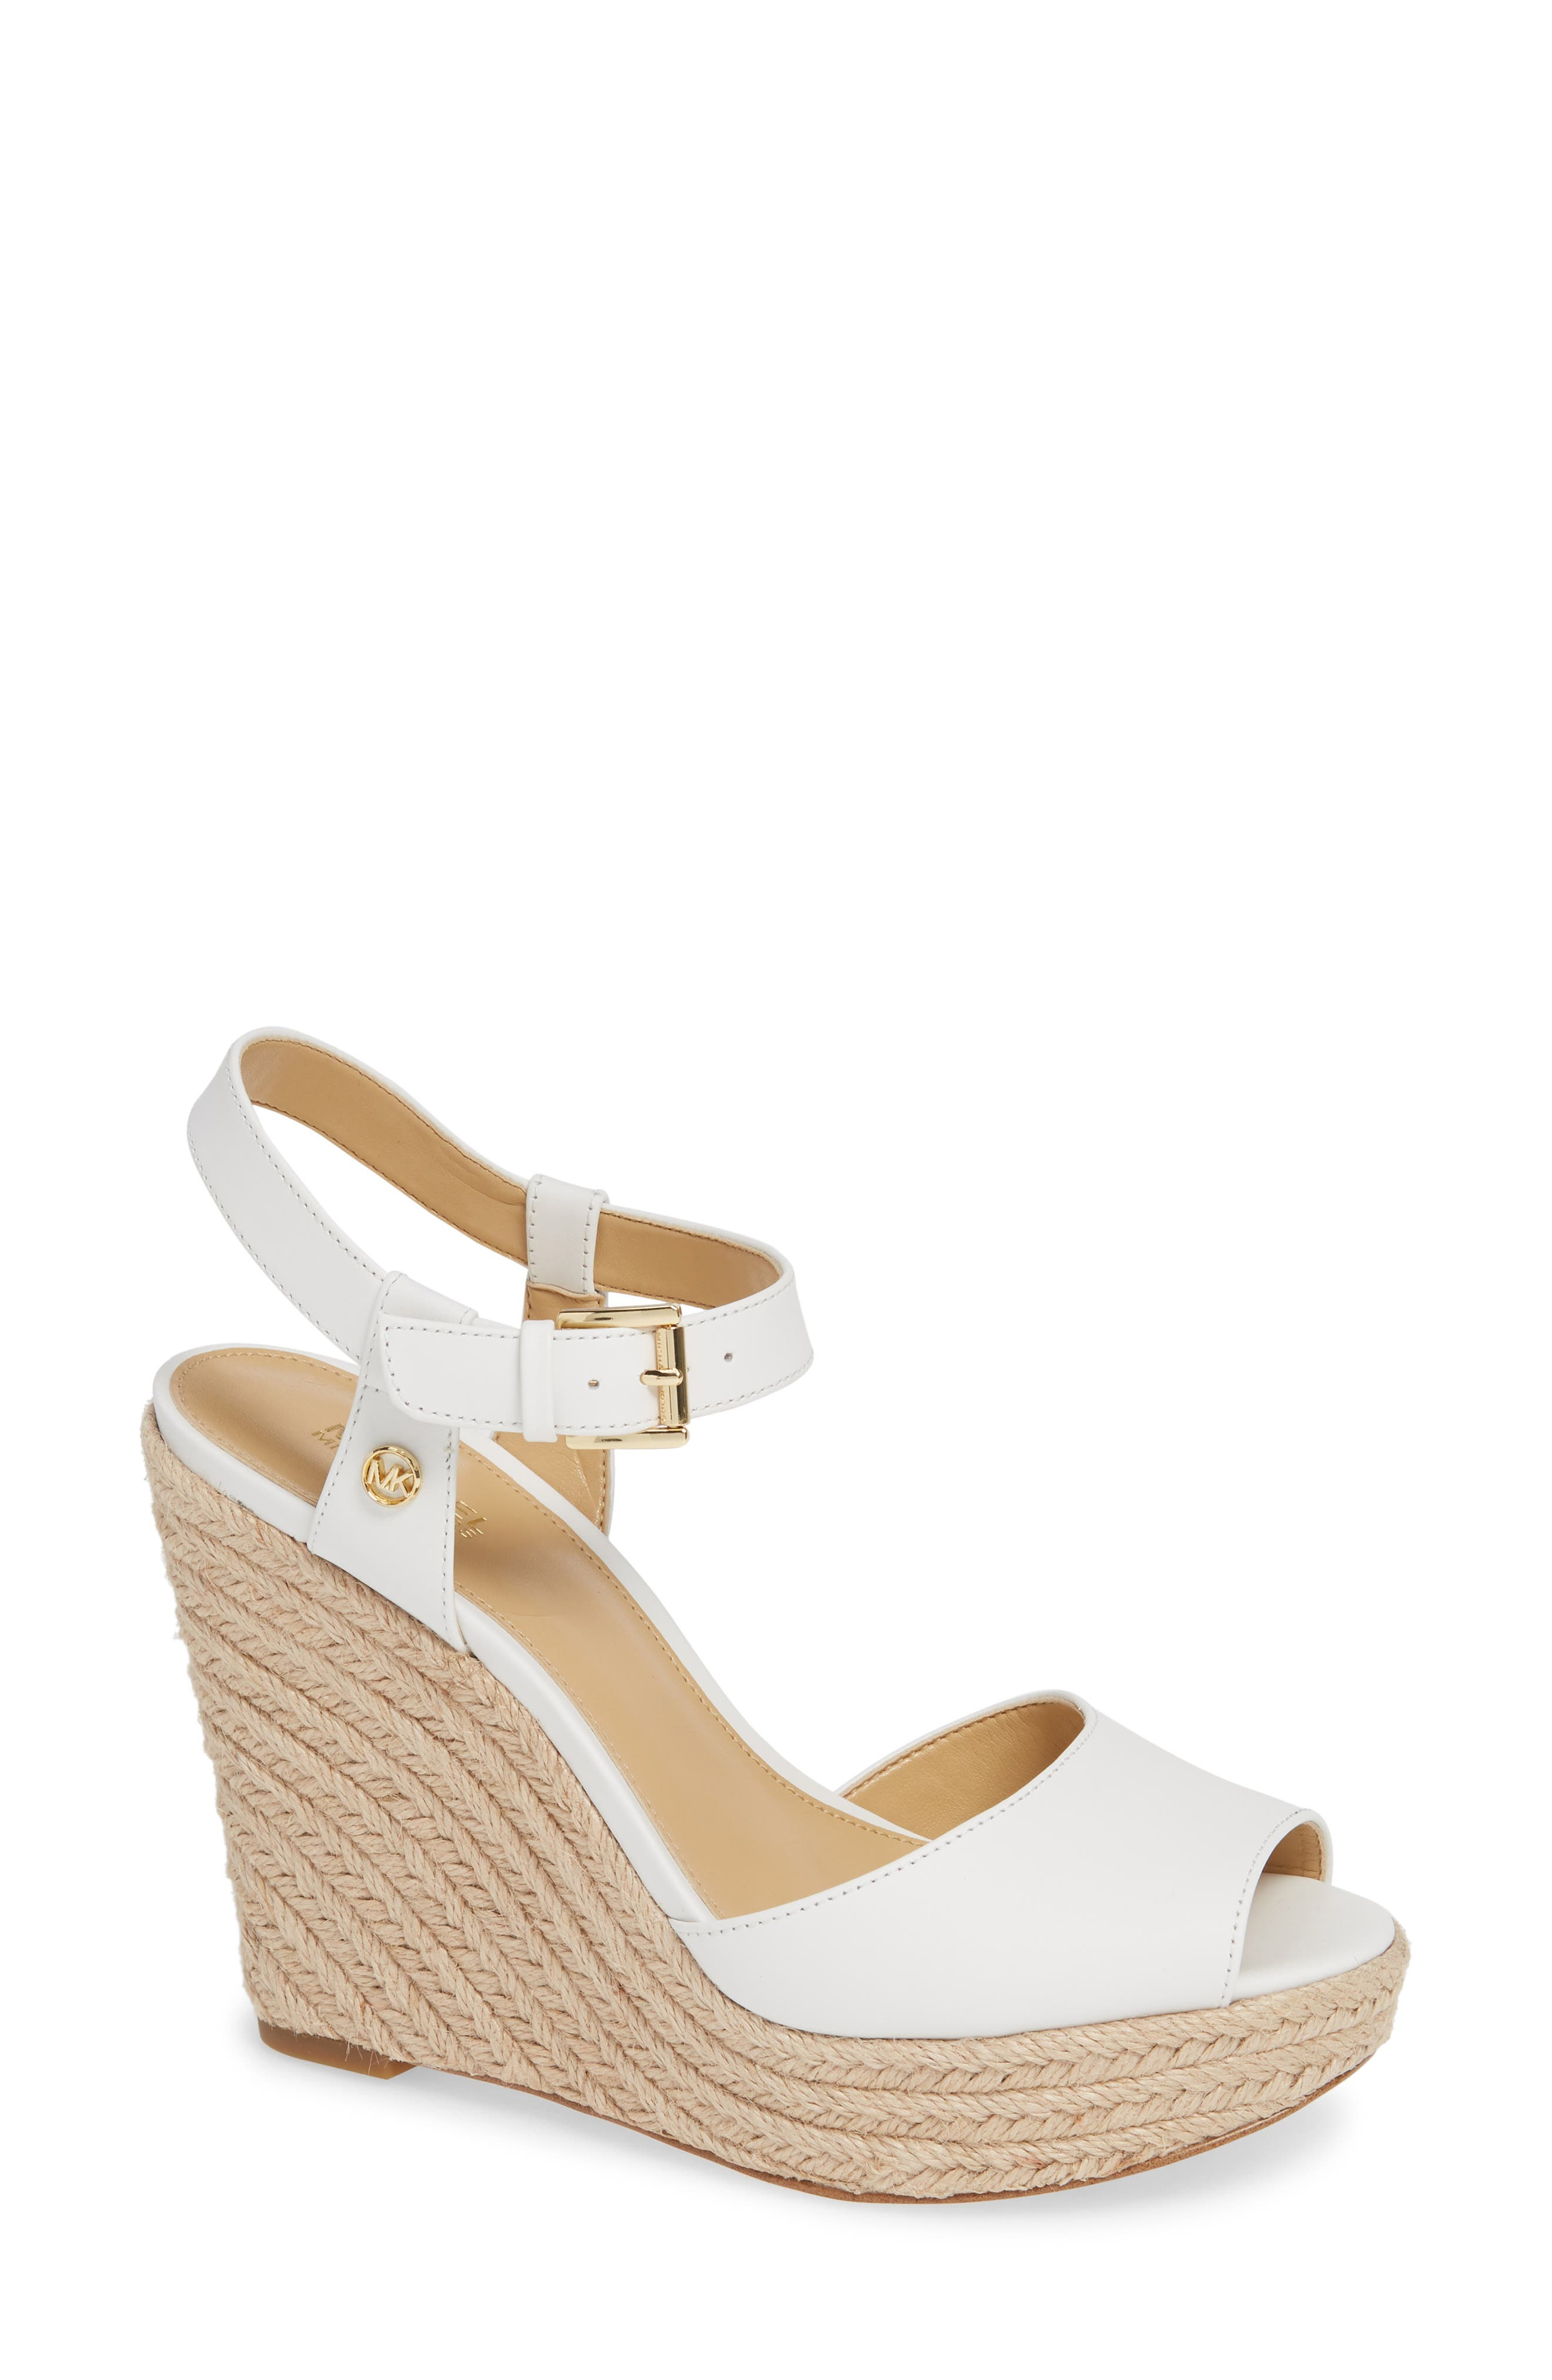 MICHAEL MICHAEL KORS Carlyn Espadrille Wedge Sandal, Main, color, 100